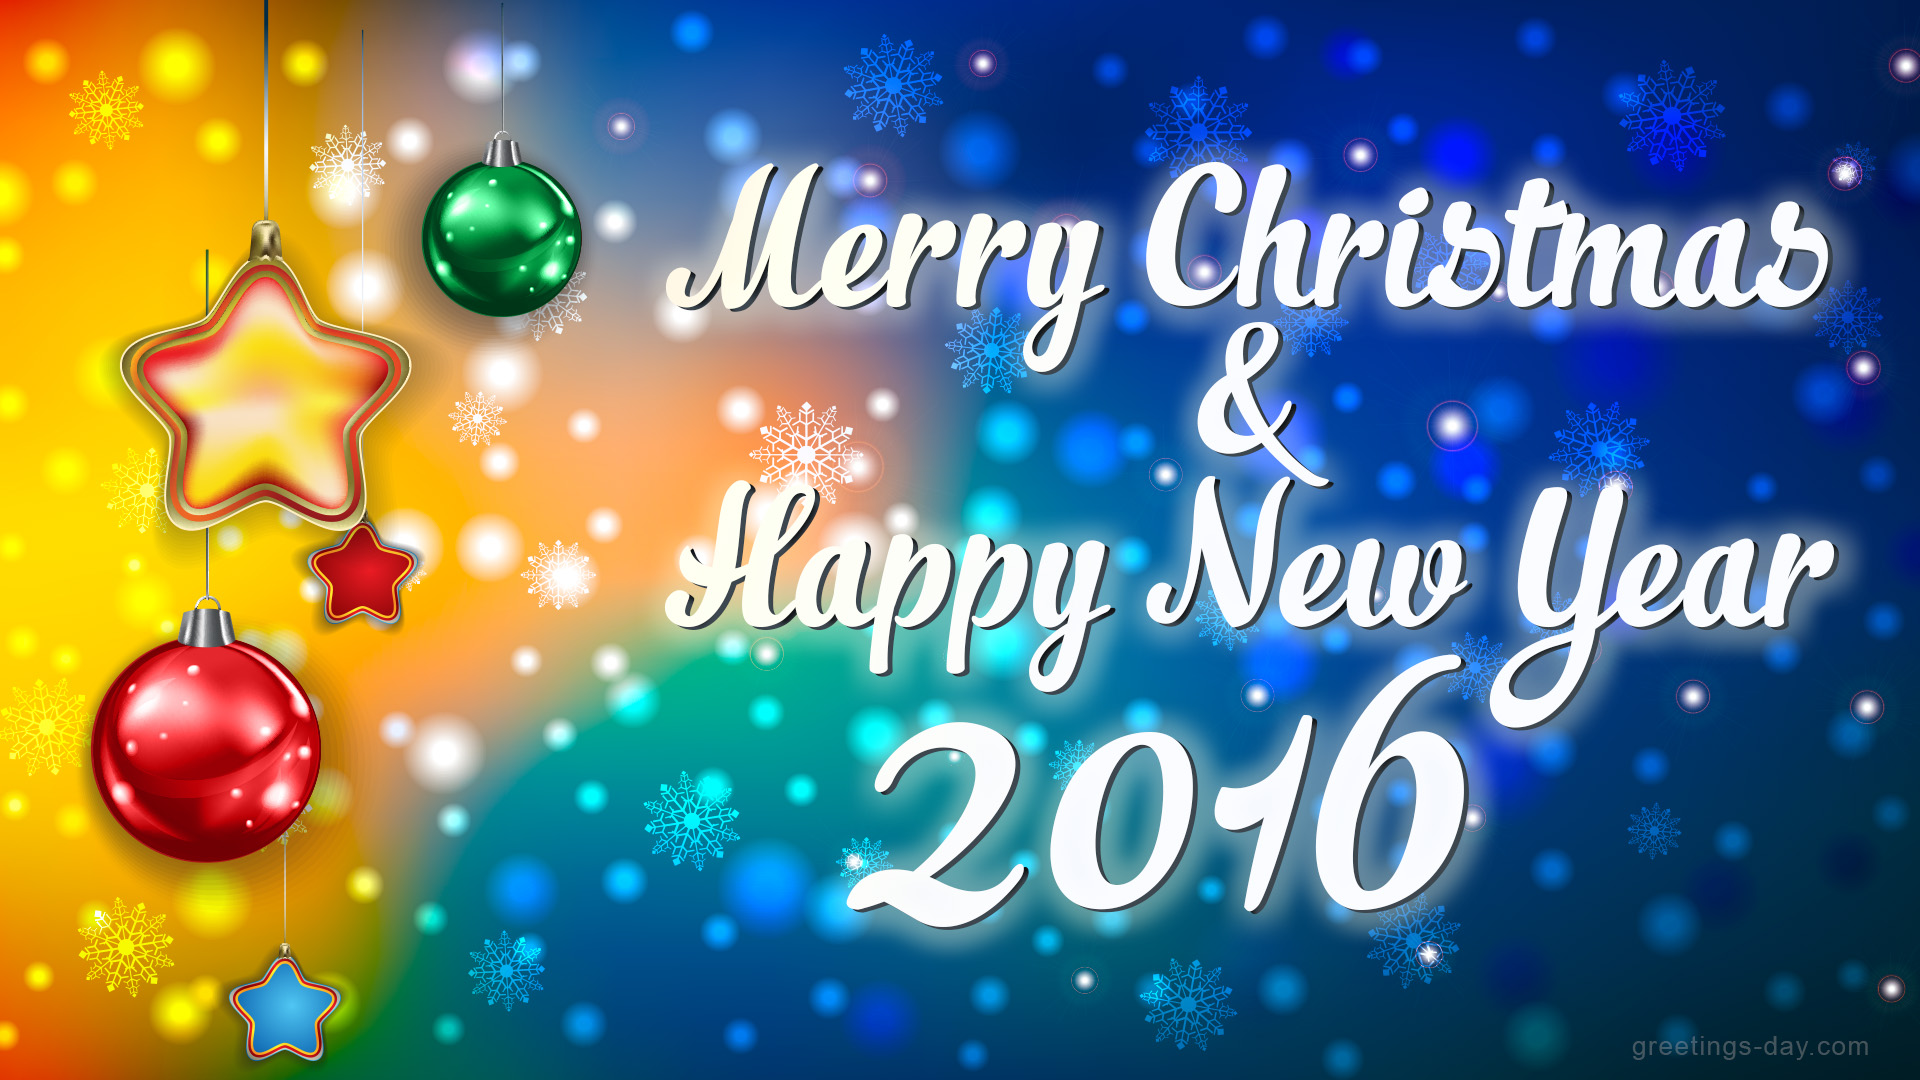 Merry Christmas & Happy New Year - Free Greeting Cards & Pictures